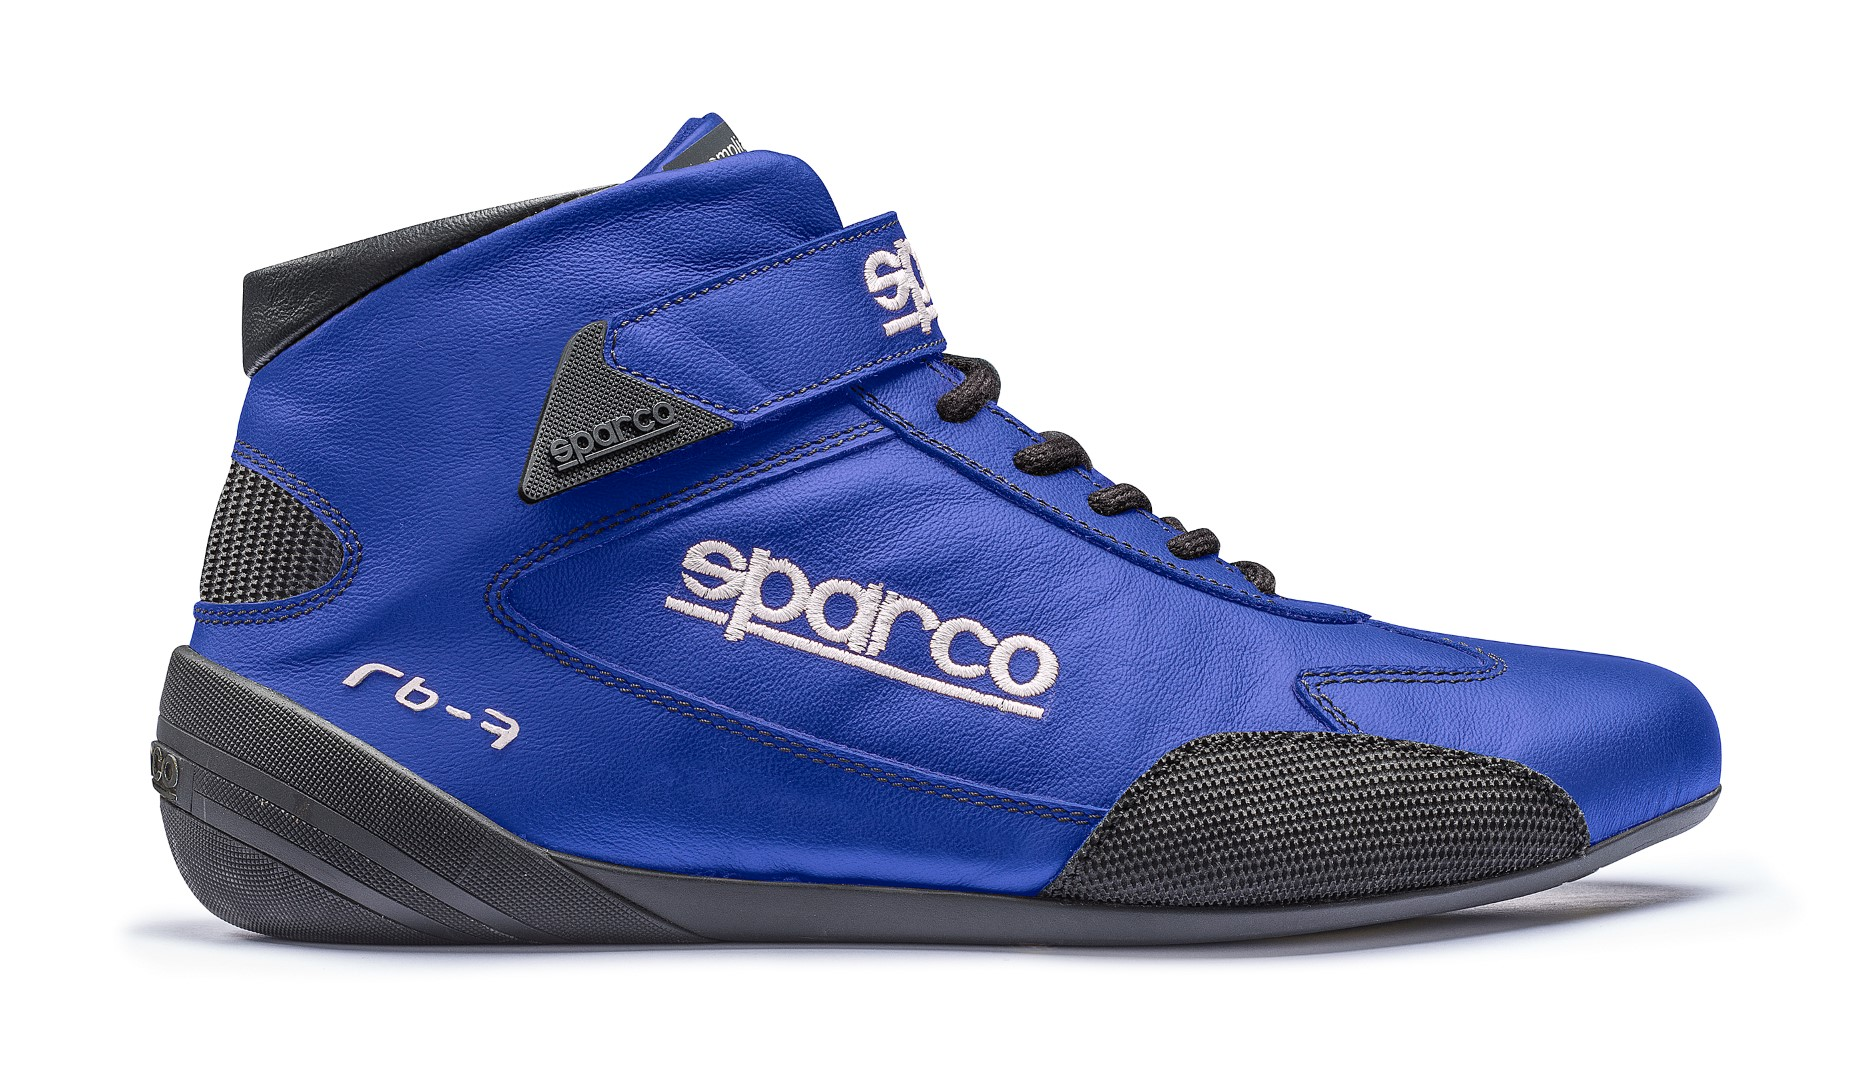 Sparco Blue Cross RB-7 Driving Shoes EU 39 | US 5.5 - 00122439AZ